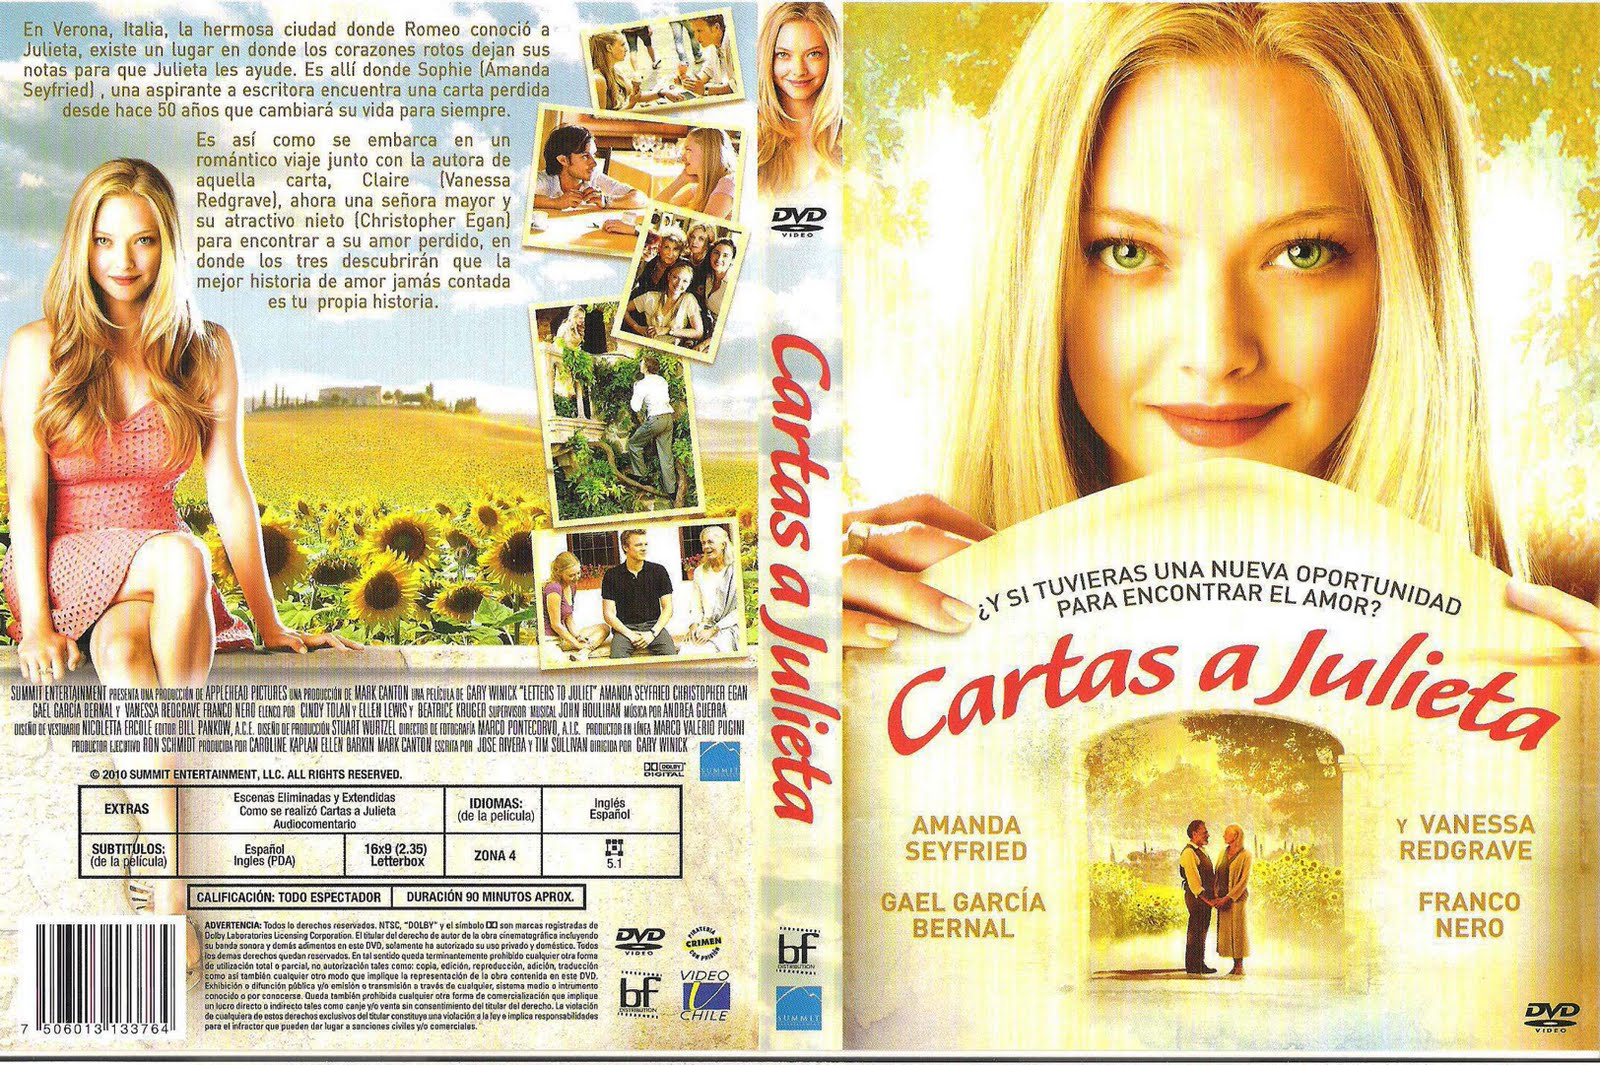 Crepusculo Libro Online Mundo Crepusculo Cartas A Julieta Letters To Juliet